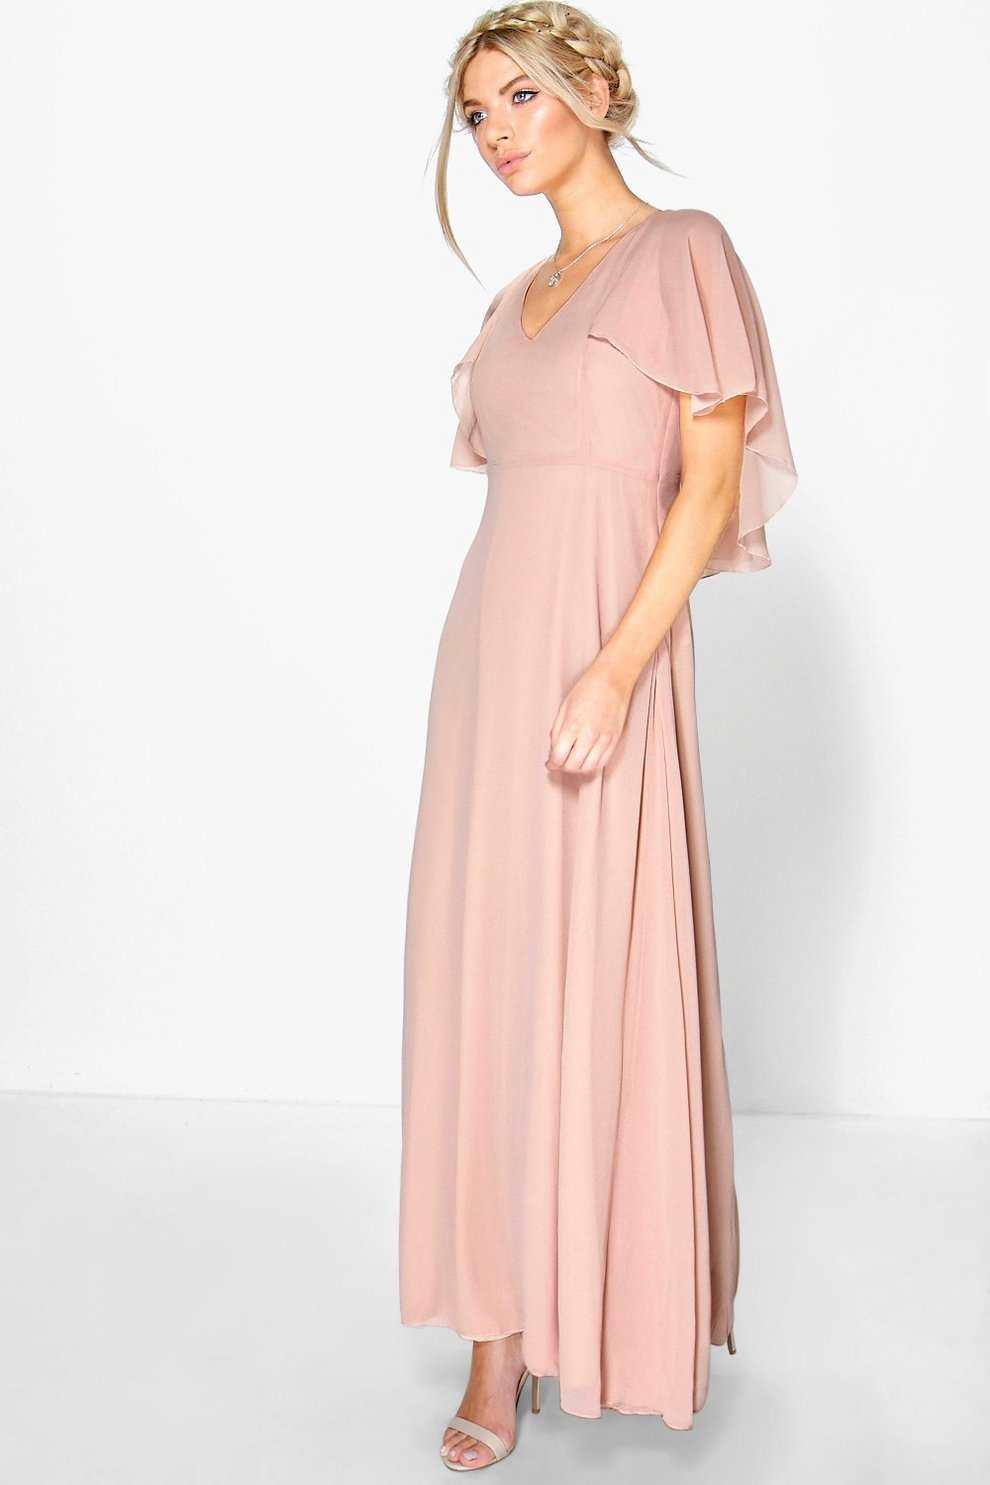 5e10e268b4a Womens Blush Chiffon Cape Detail Maxi Dress